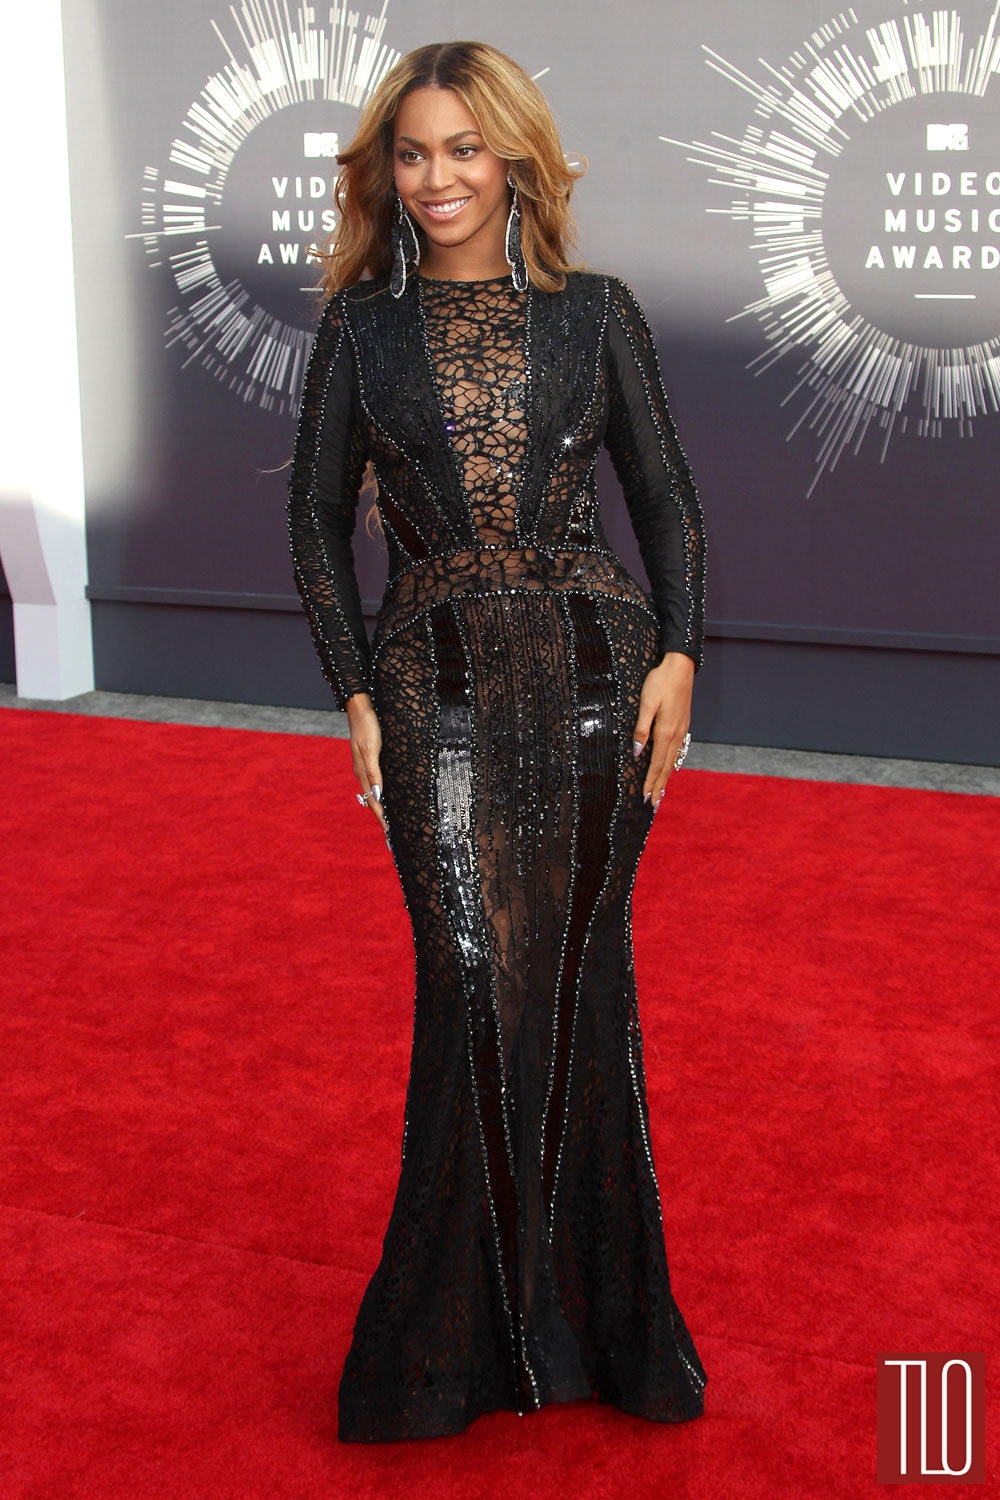 Beyonce-2014-Video-Music-Awards-VMAs-Red-Carpet-Nicolas-Jebran-Tom-Lorenzo-Site-TLO (1)